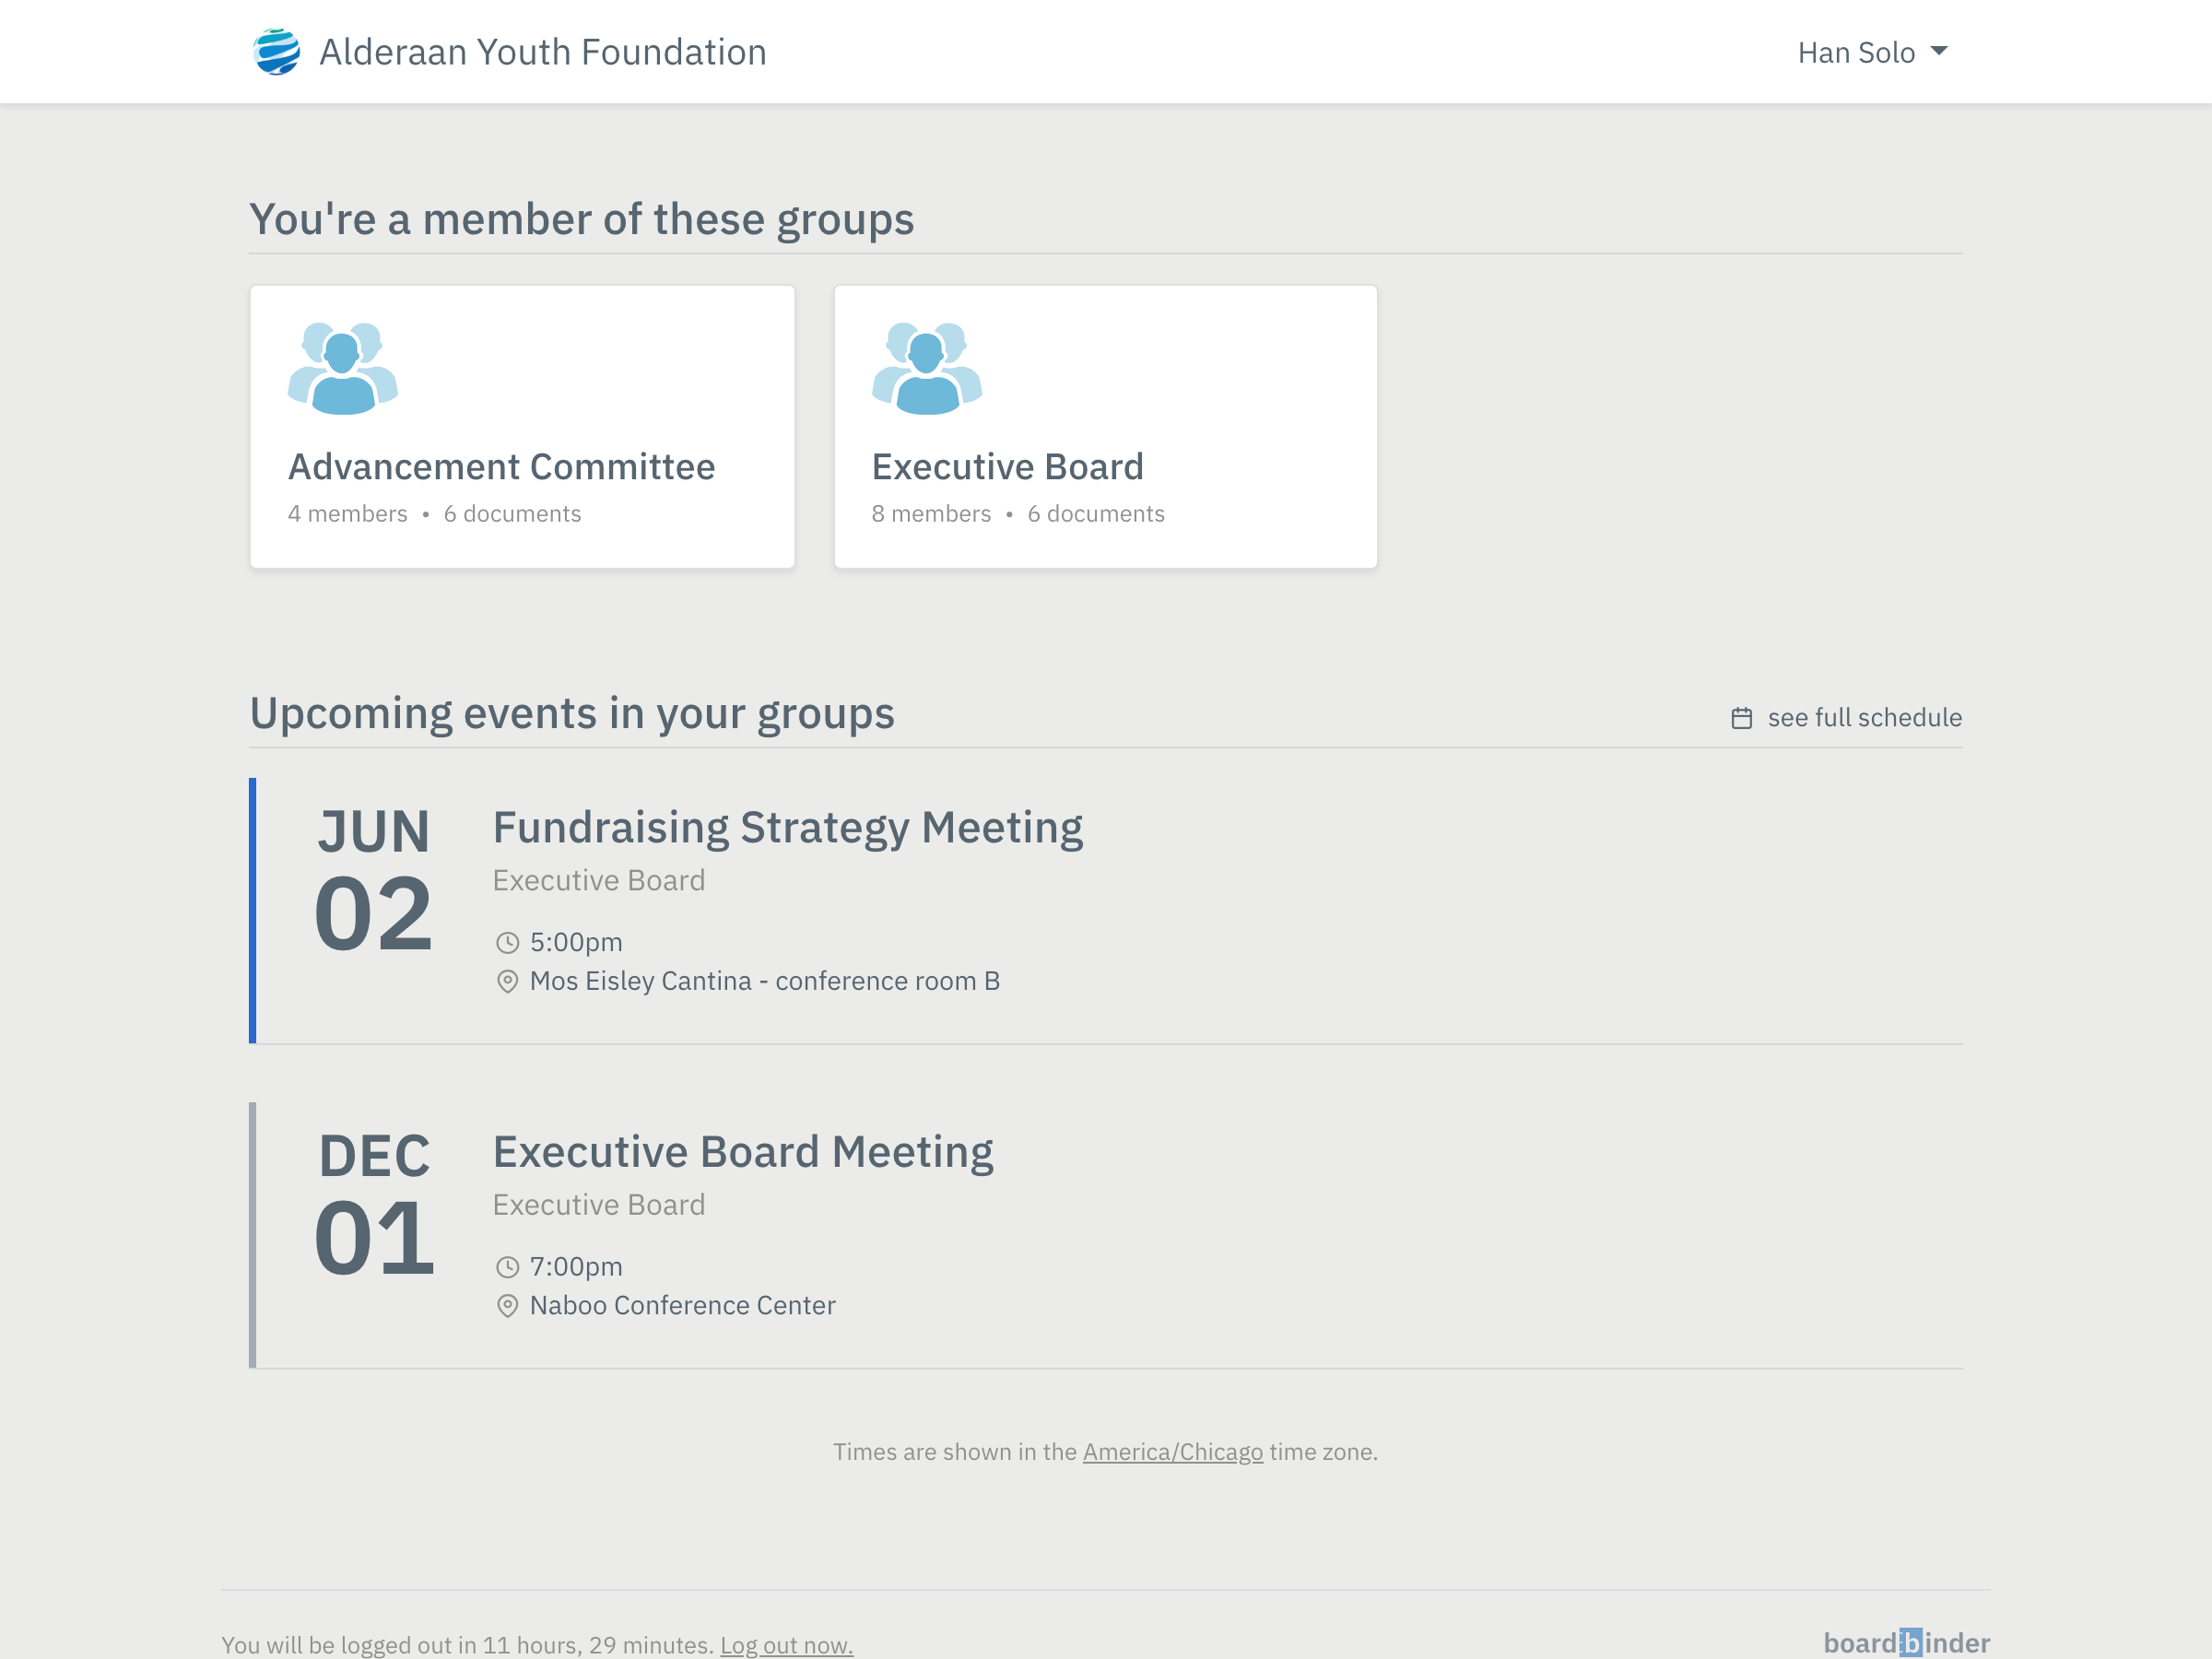 Meeting events and documents in BoardBinder